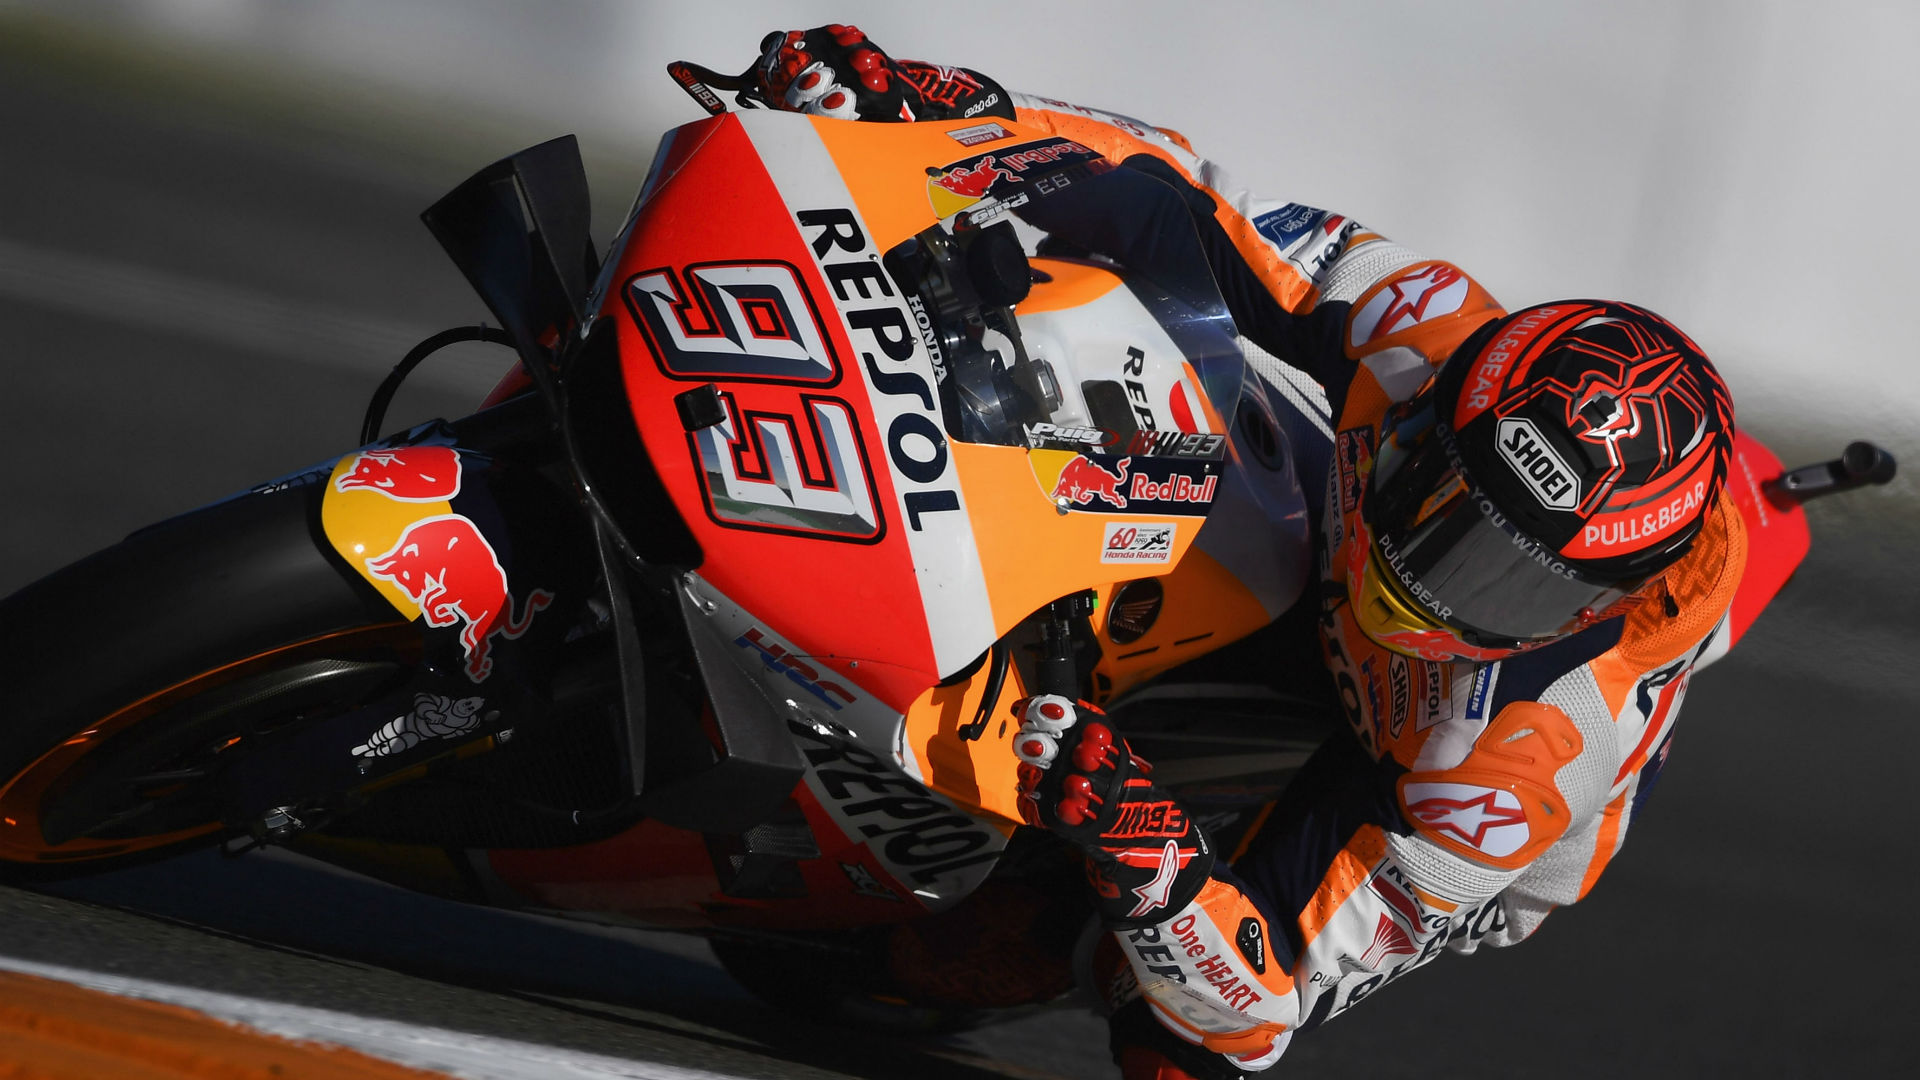 Marc Marquez has had an operation on his right shoulder following a crash during testing in Jerez.